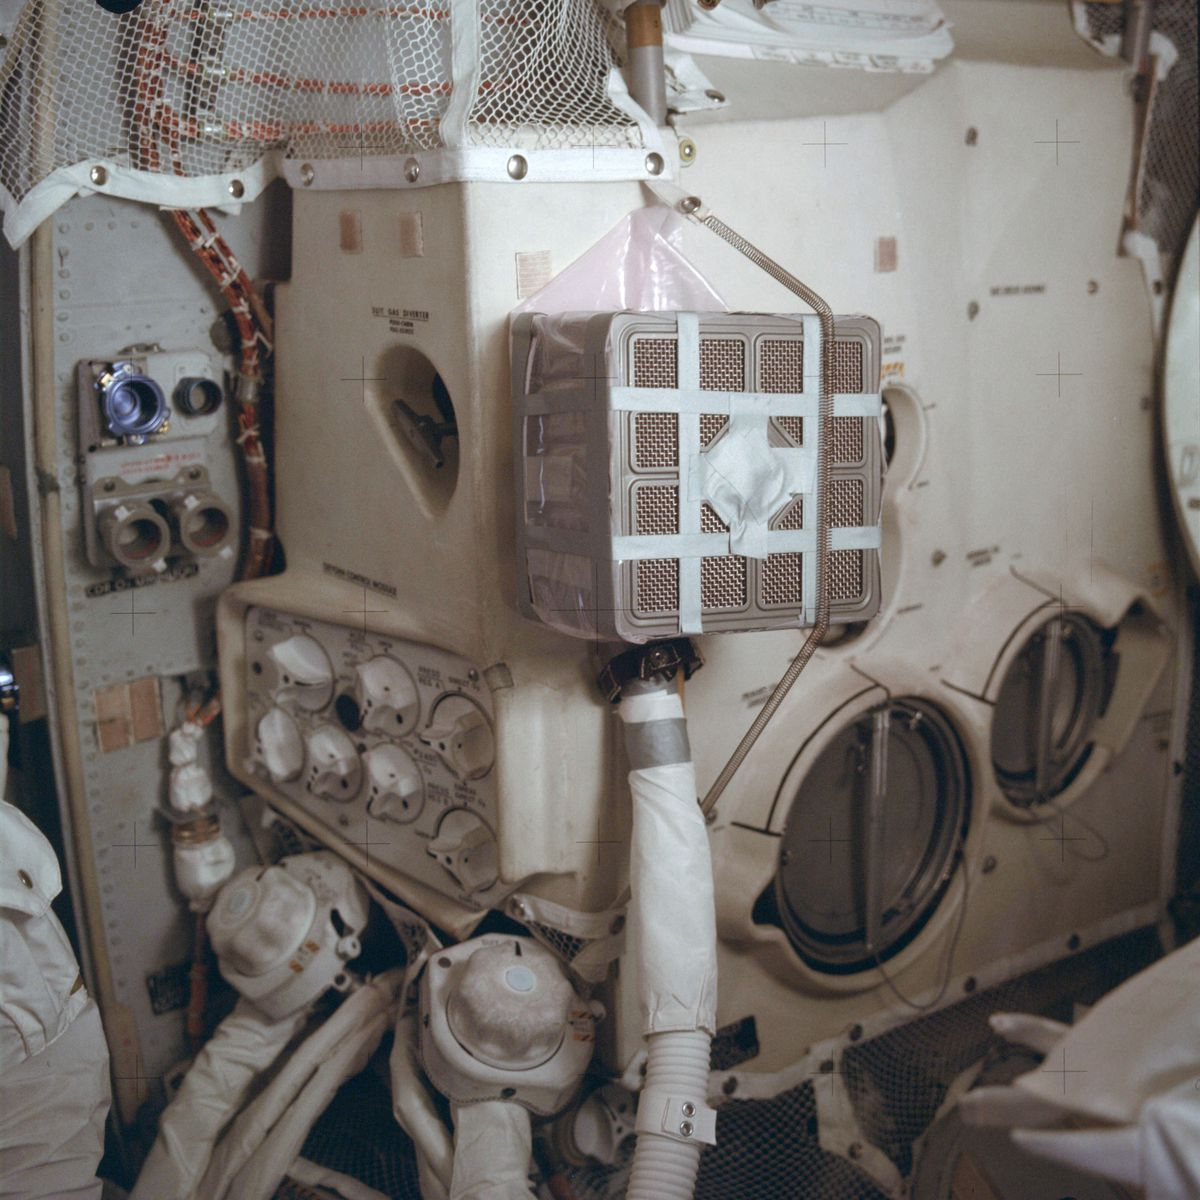 """This April 1970 photo made available by NASA shows the interior of the Apollo 13 lunar module with the """"mail box,"""" an ad hoc device which the crew assembled while in space to remove carbon dioxide from the air. It was designed and tested on the ground in Houston. Because of the explosion of one of the oxygen tanks in the service module, the three men had to use the lunar module as a """"lifeboat"""" on their way back to Earth."""